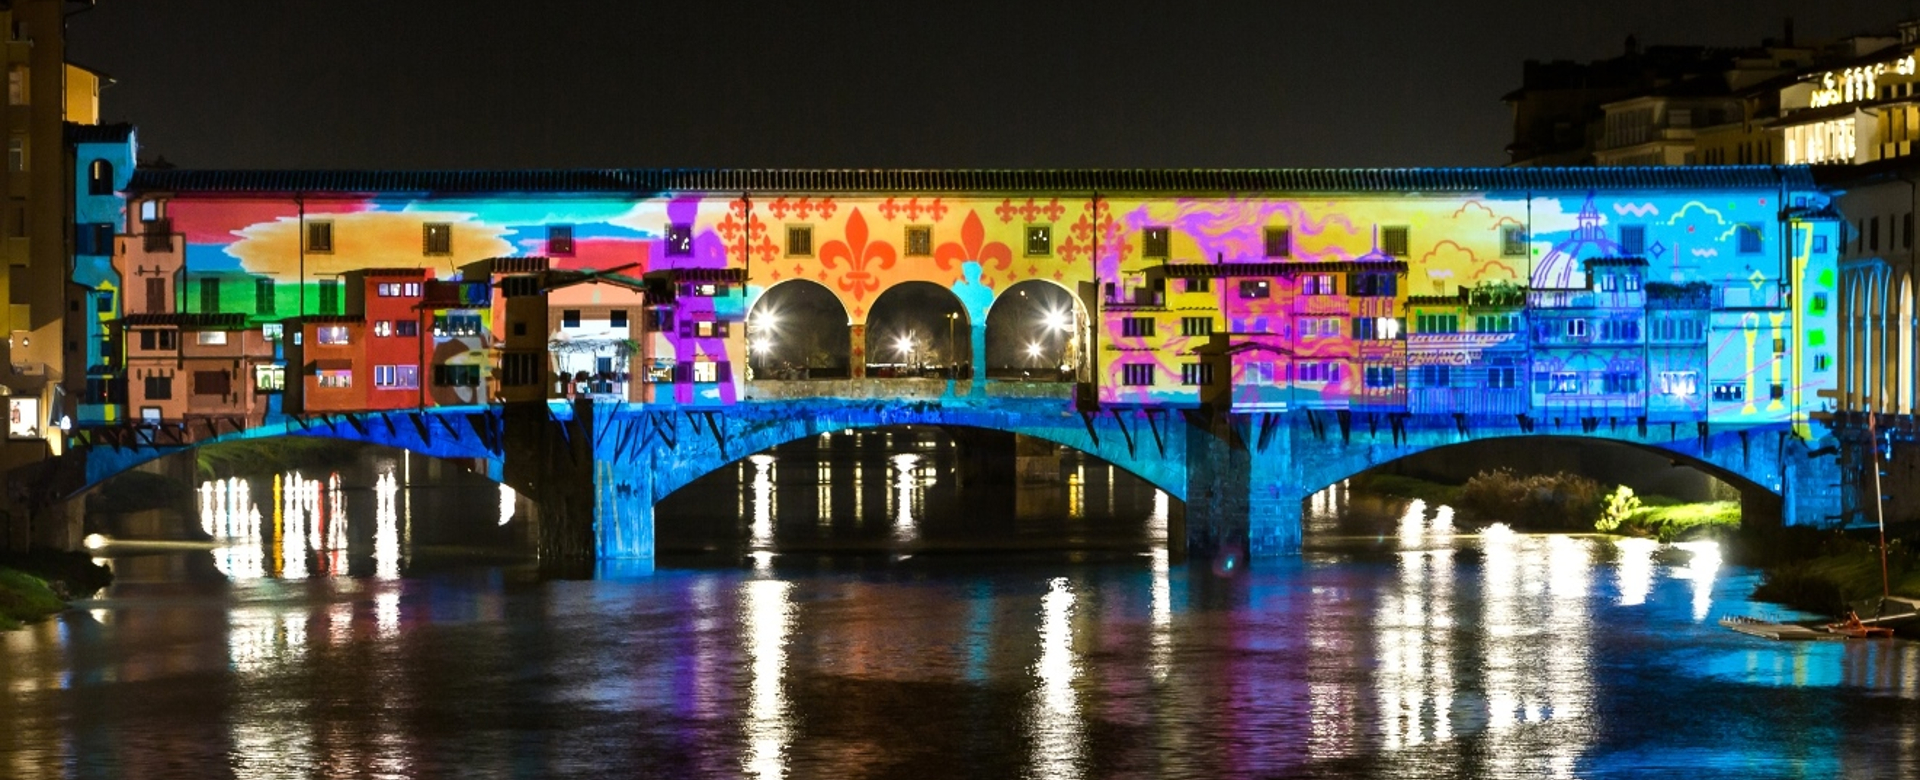 Christmas In Italy 2019.F Light Festival 2018 2019 Christmas Lights In Florence Italy